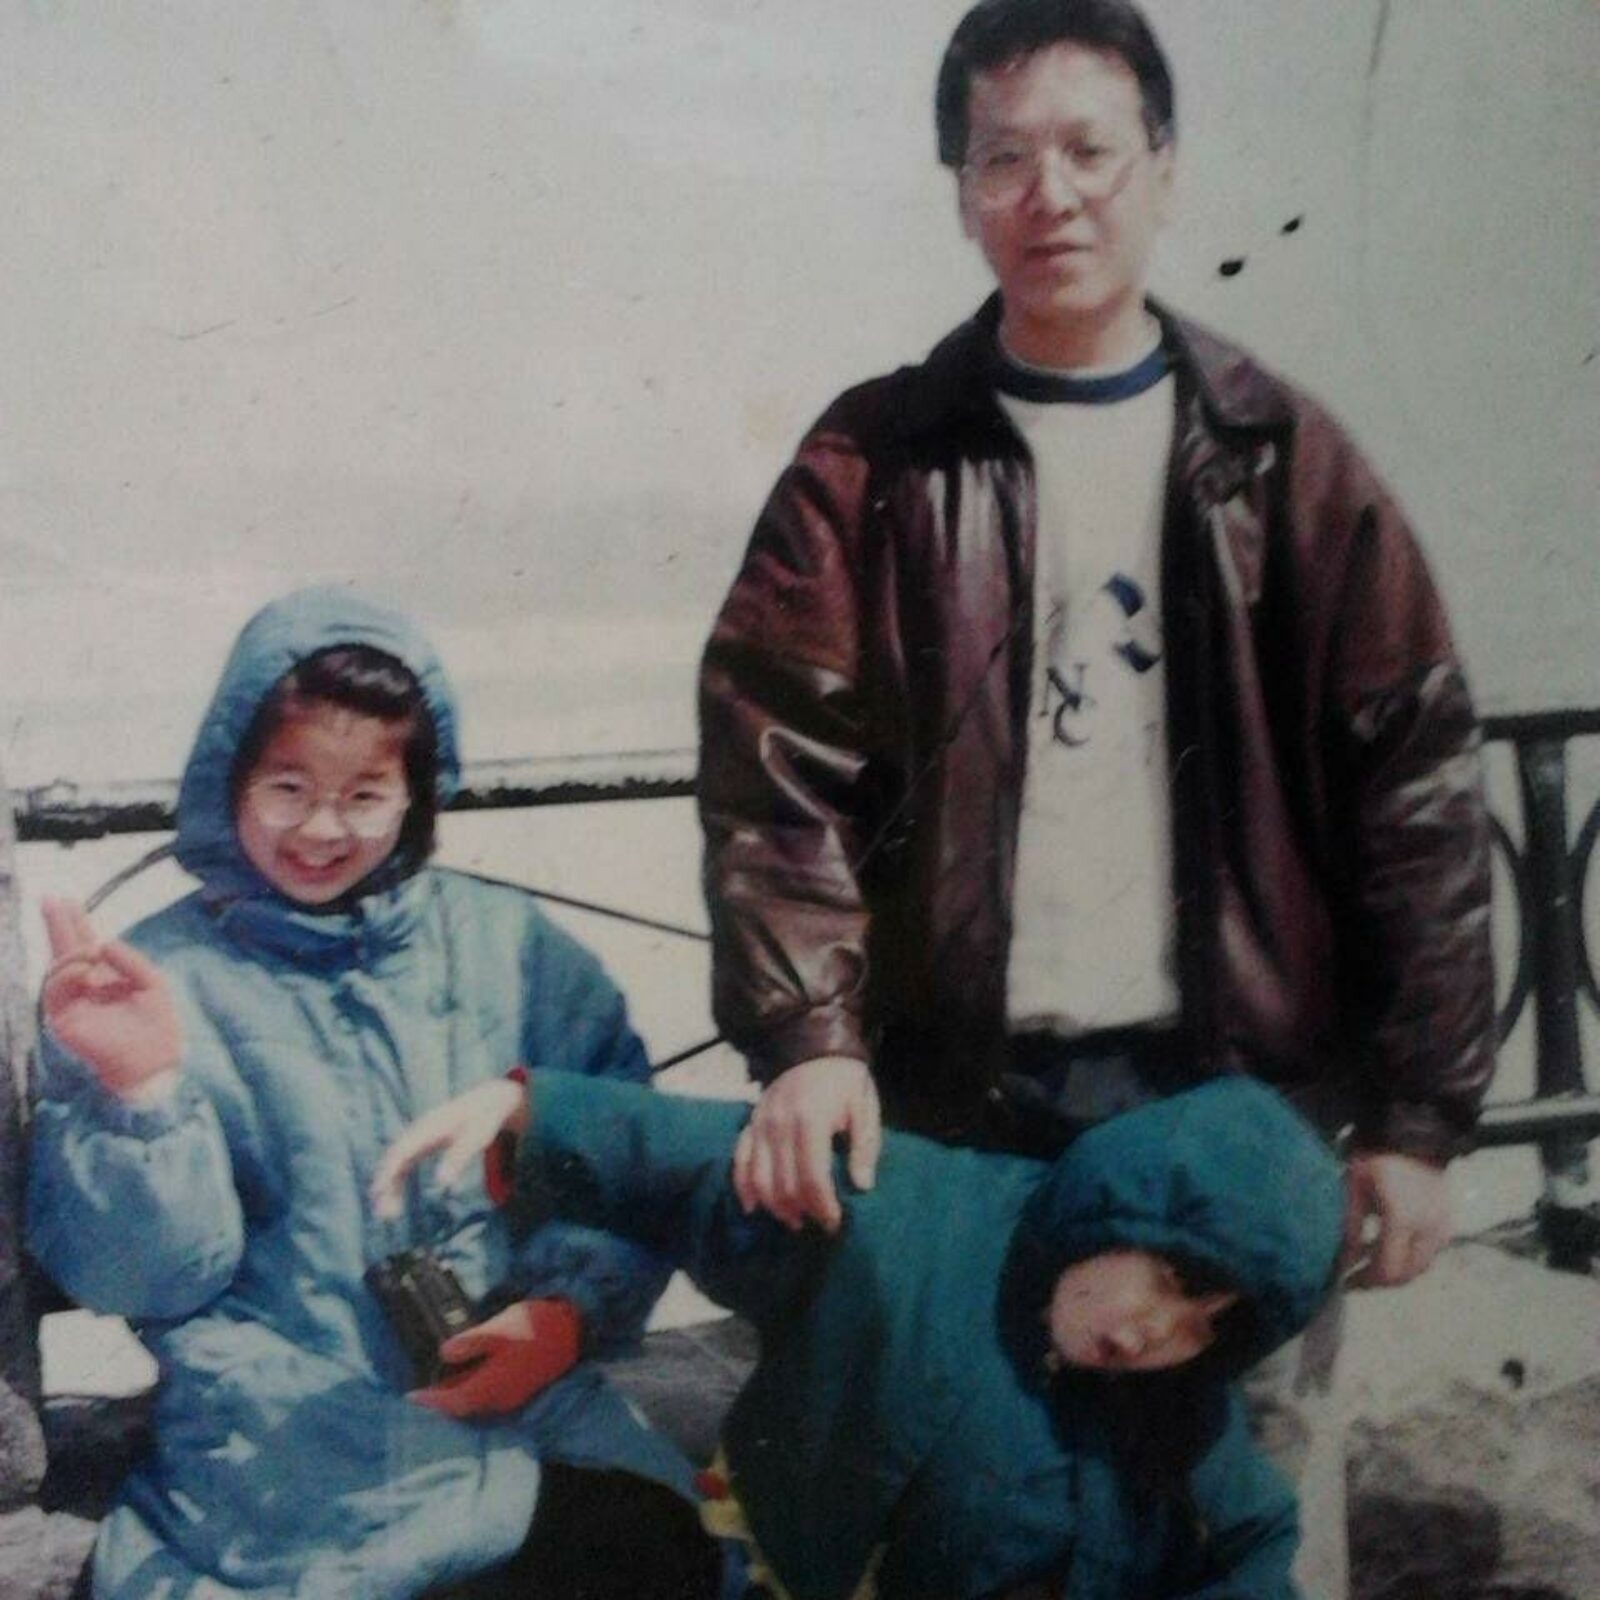 Renee as a child clowning around while her sister and father pose for a photo.